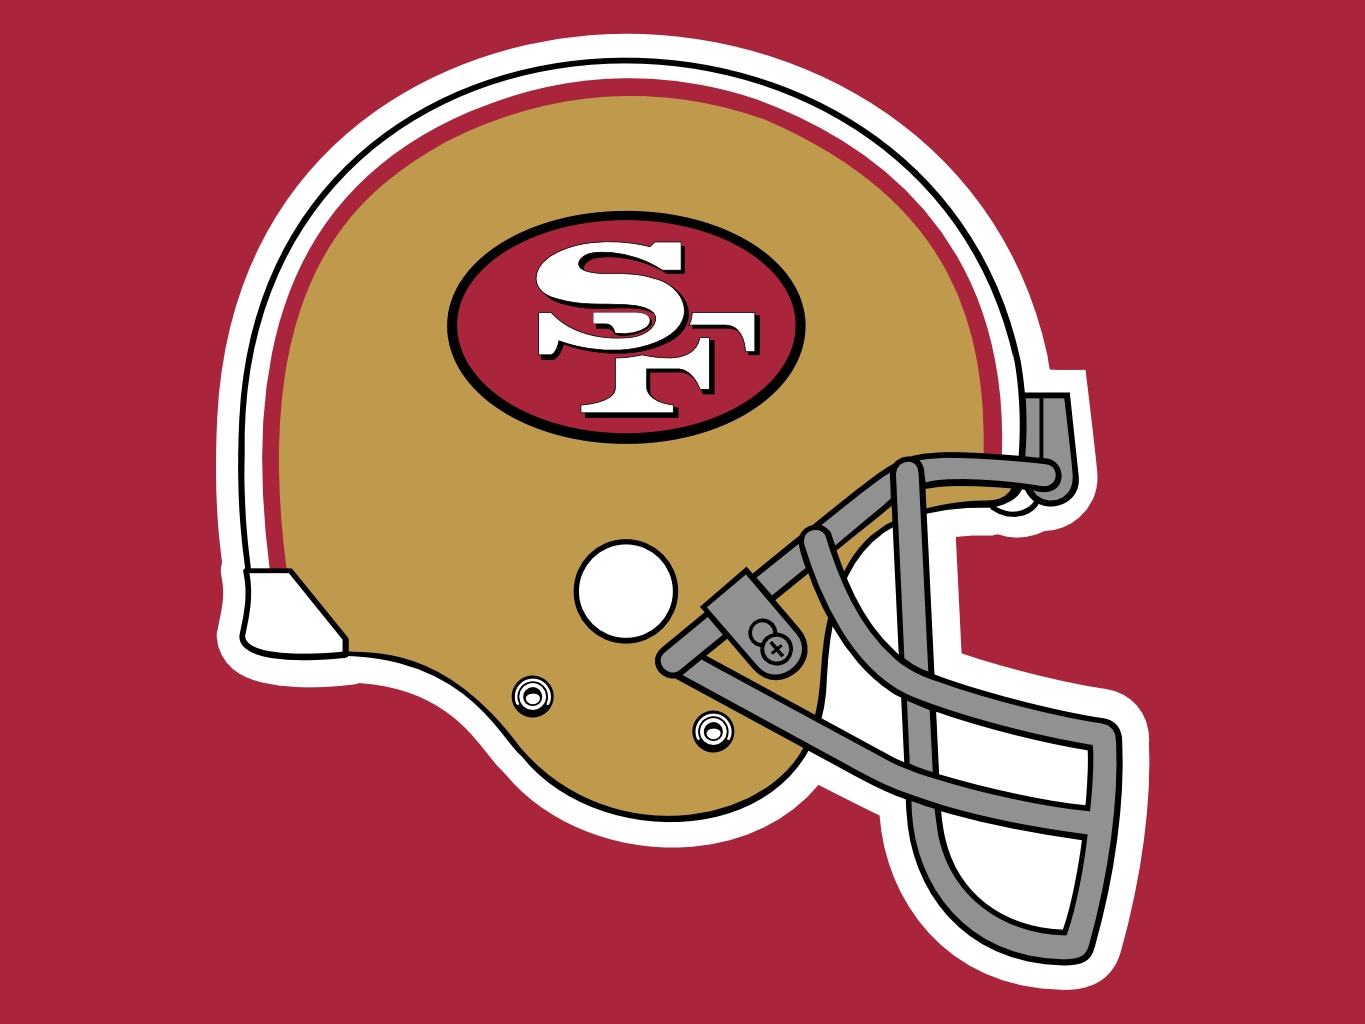 San Francisco 49ers Old Helmut Clipart